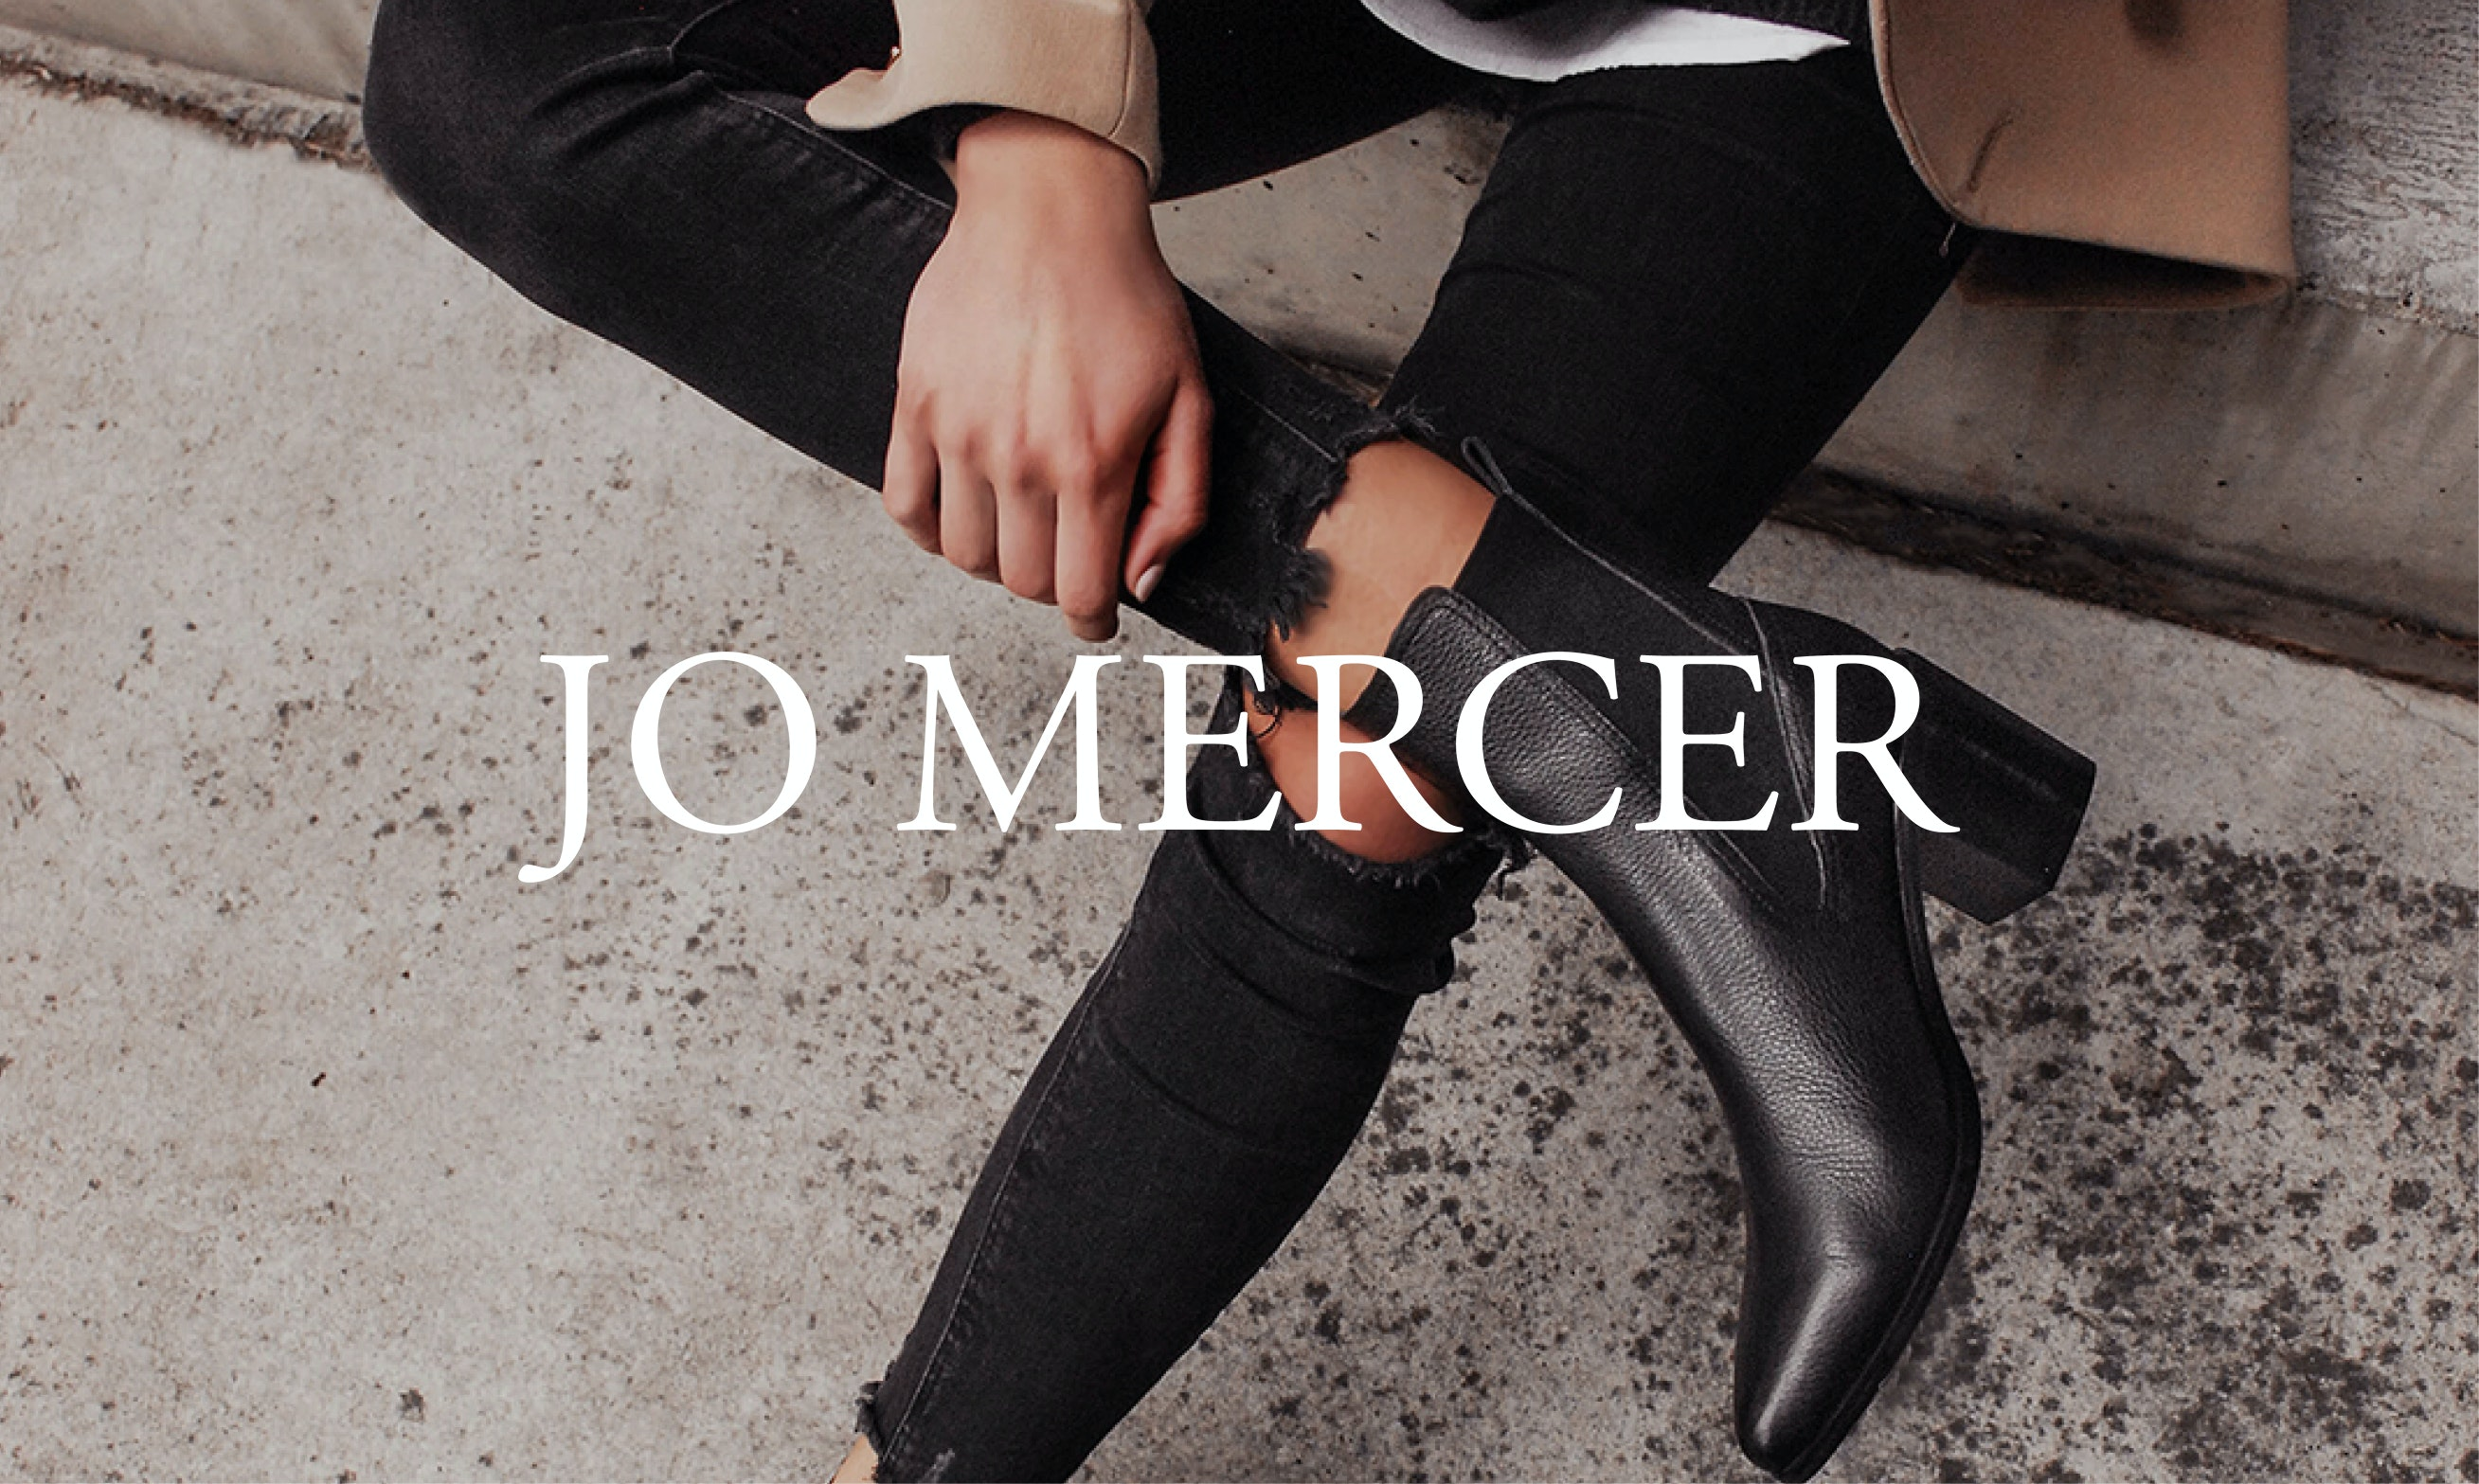 Shop Jo Mercer on Crèmm